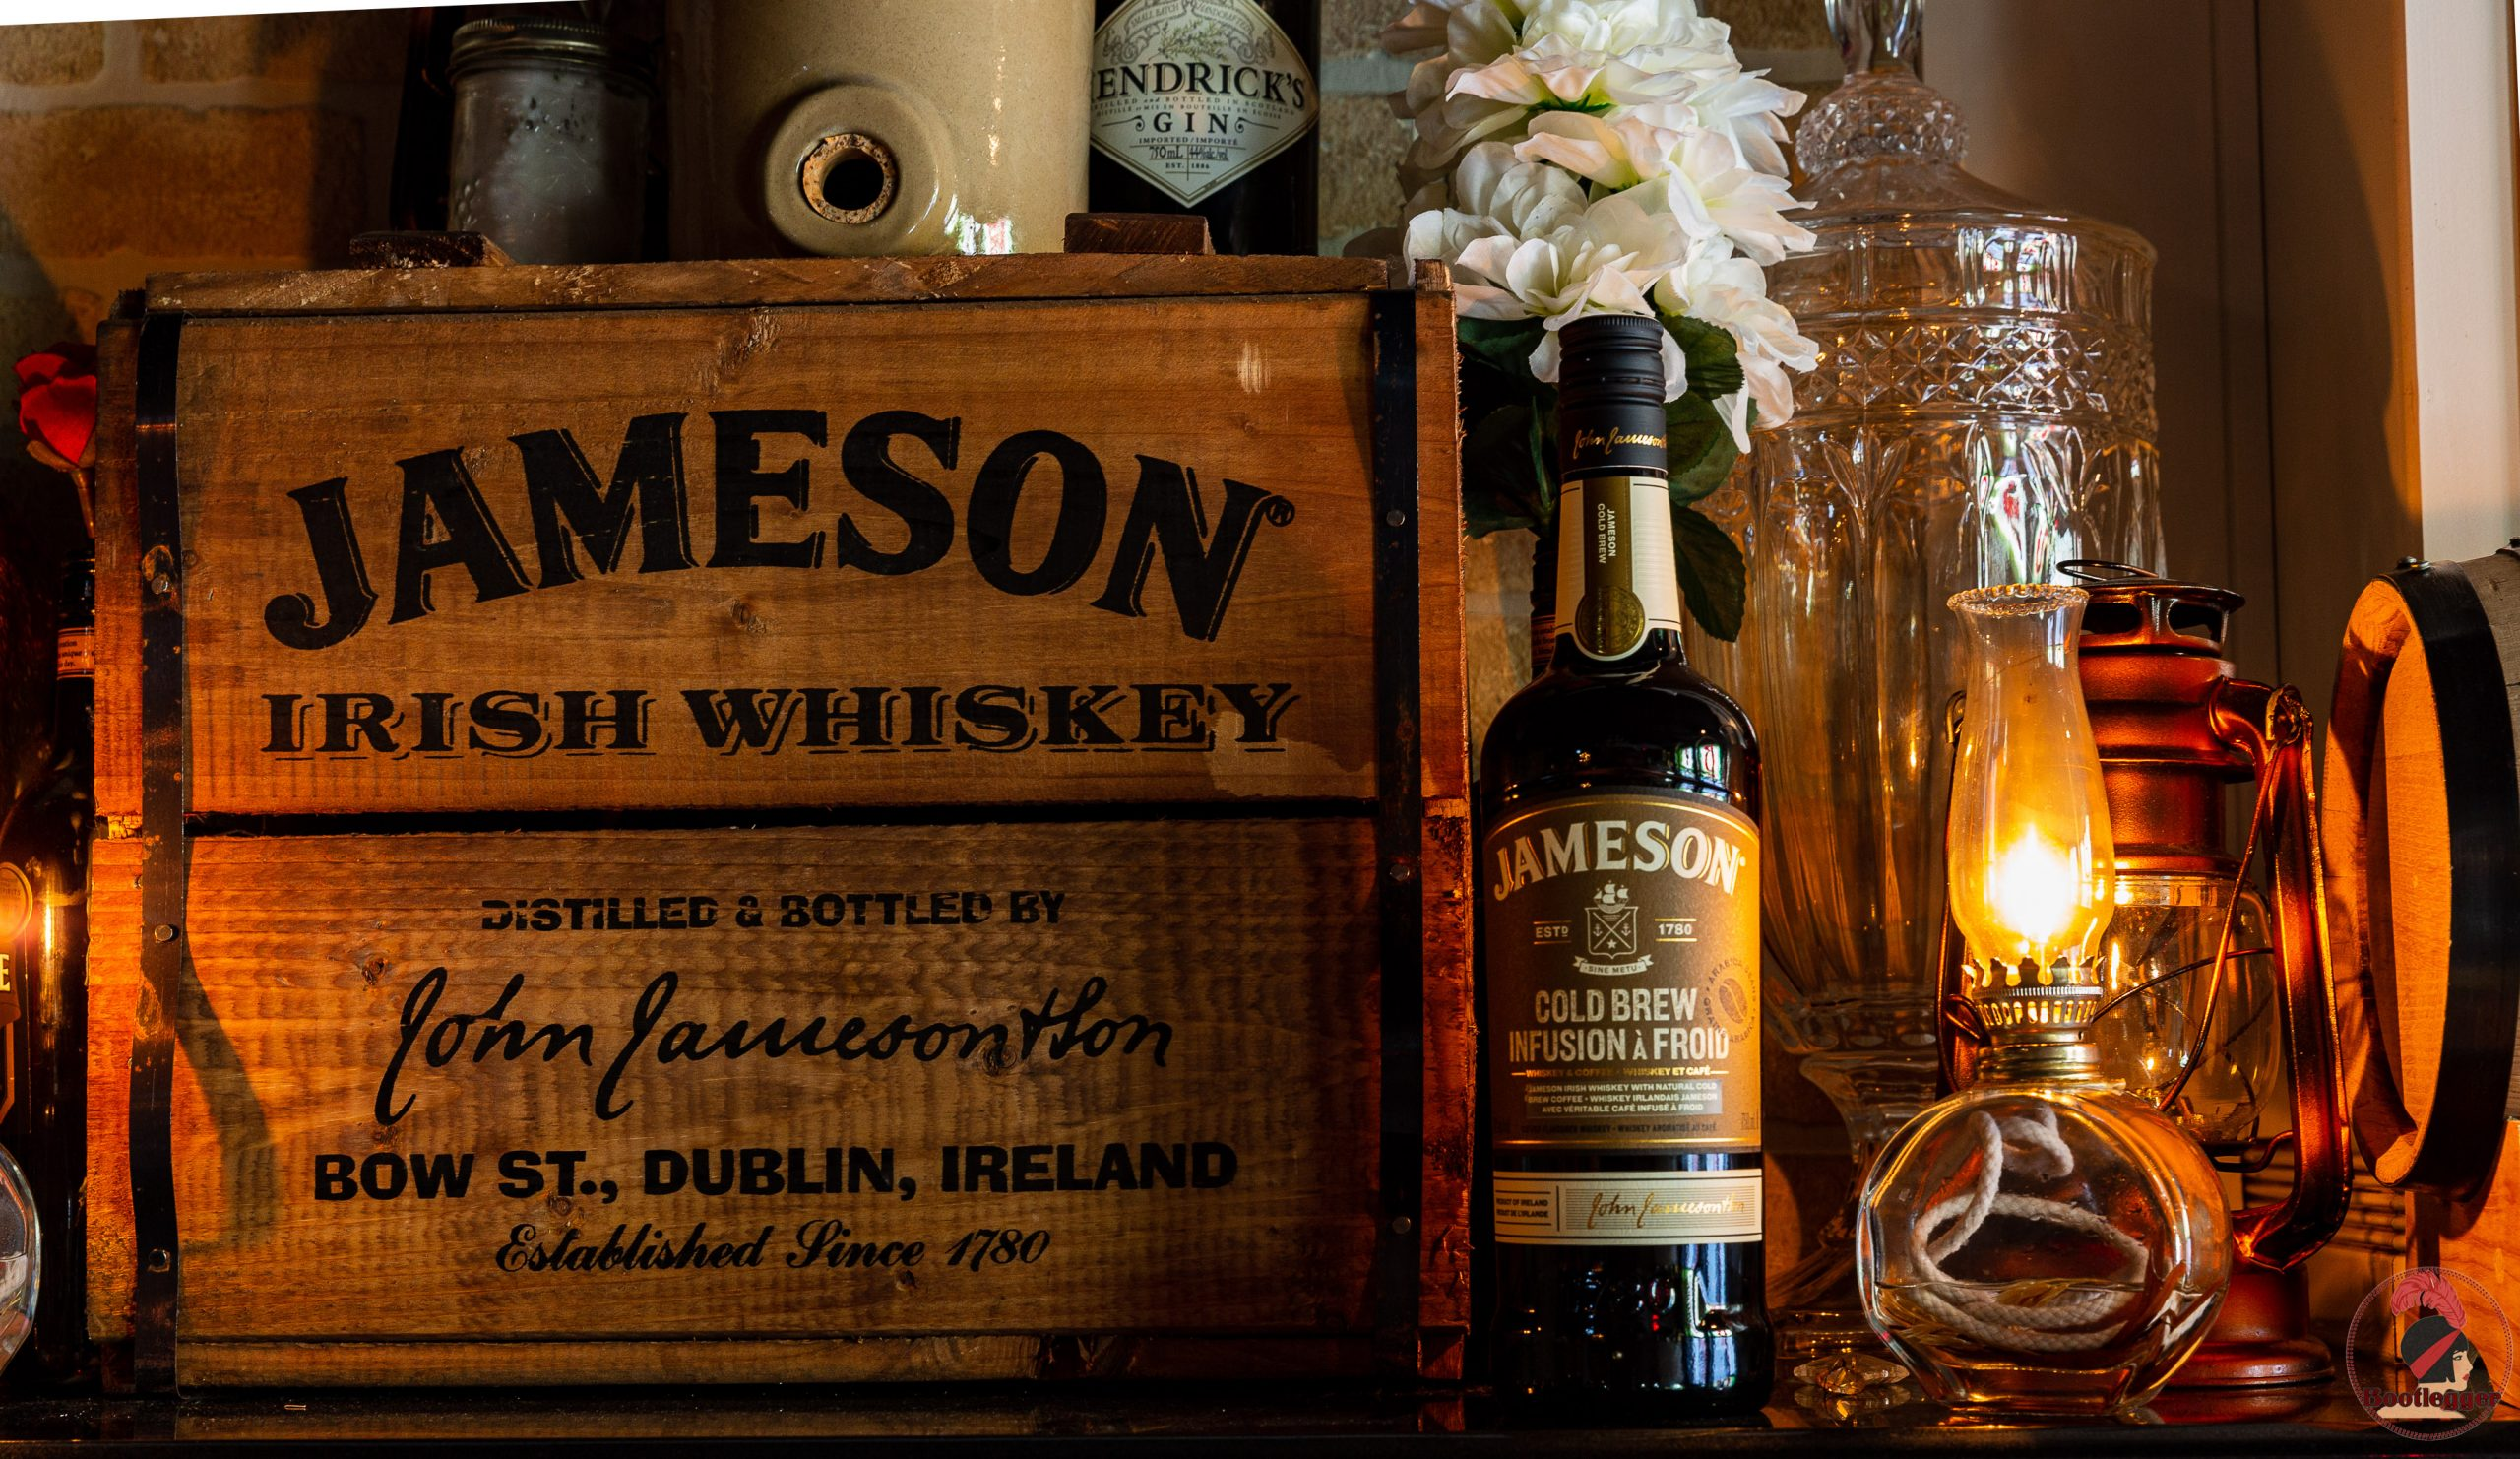 Jameson Coldbrew irish whiskey